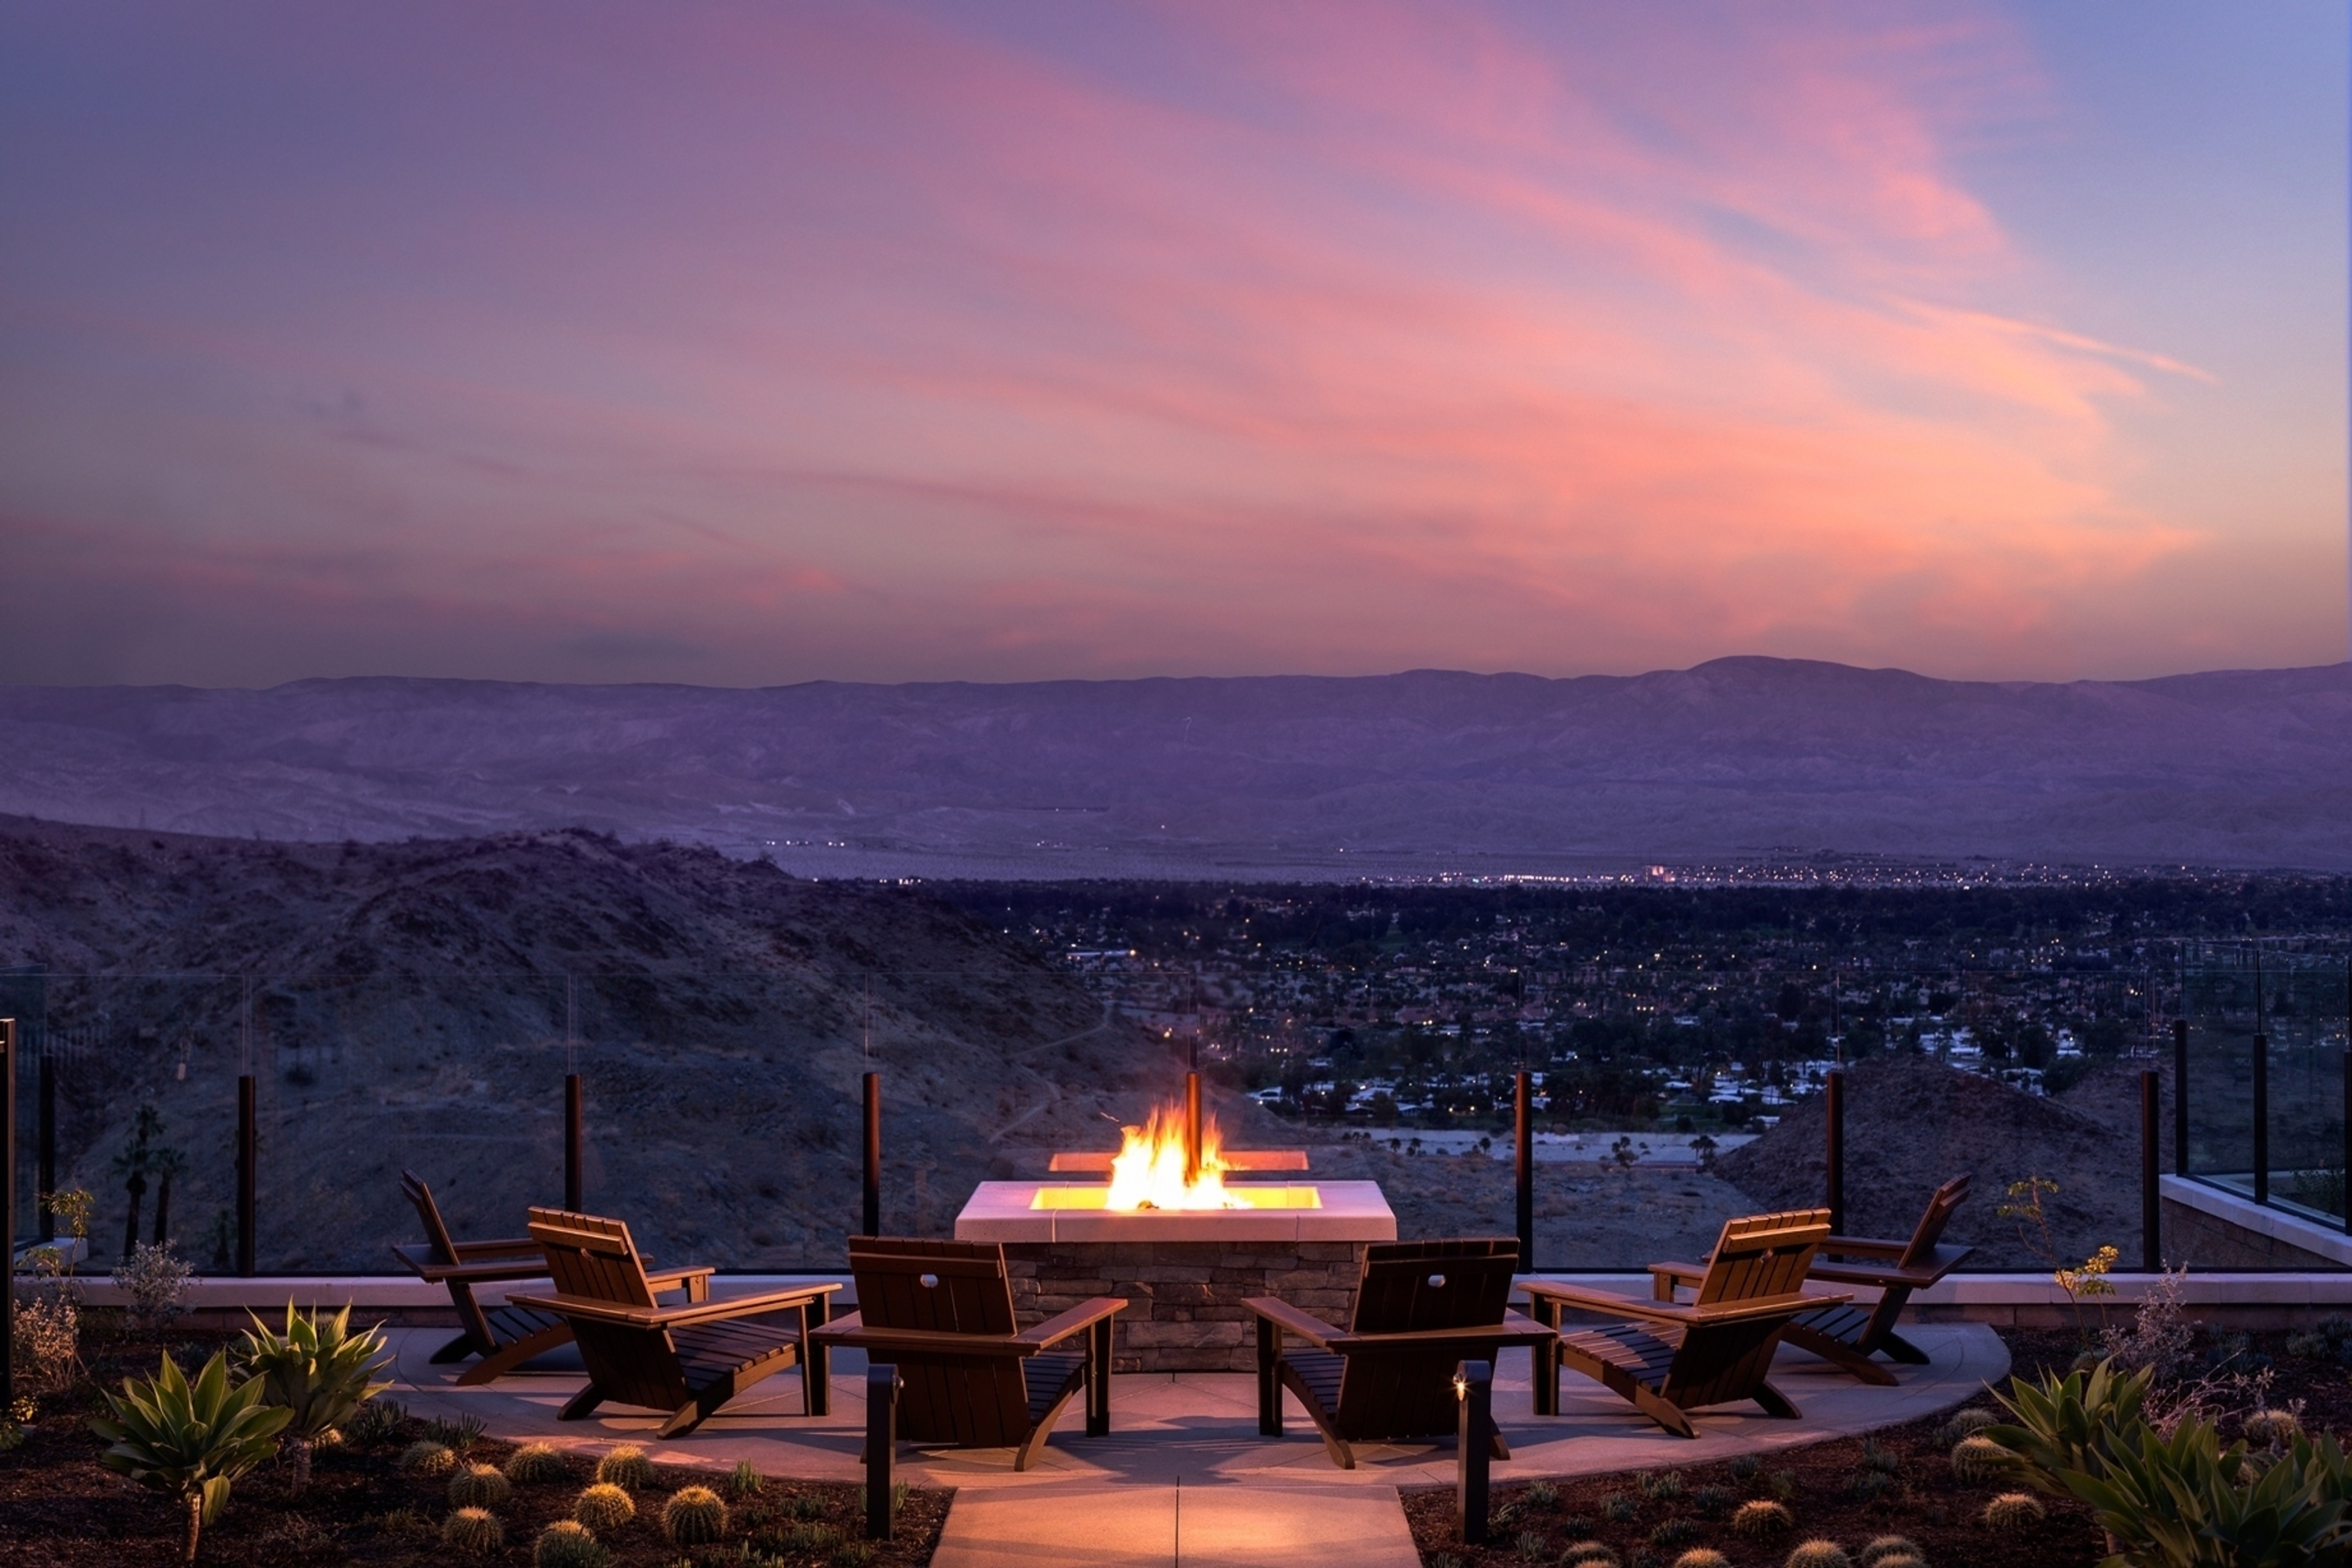 The Ritz-Carlton, Rancho Mirage Officially Unveils Desert Chic in Southern California; Highly-Anticipated Style and Sophistication Welcome Guests To Greater Palm Springs. (PRNewsFoto/The Ritz-Carlton Hotel Company)